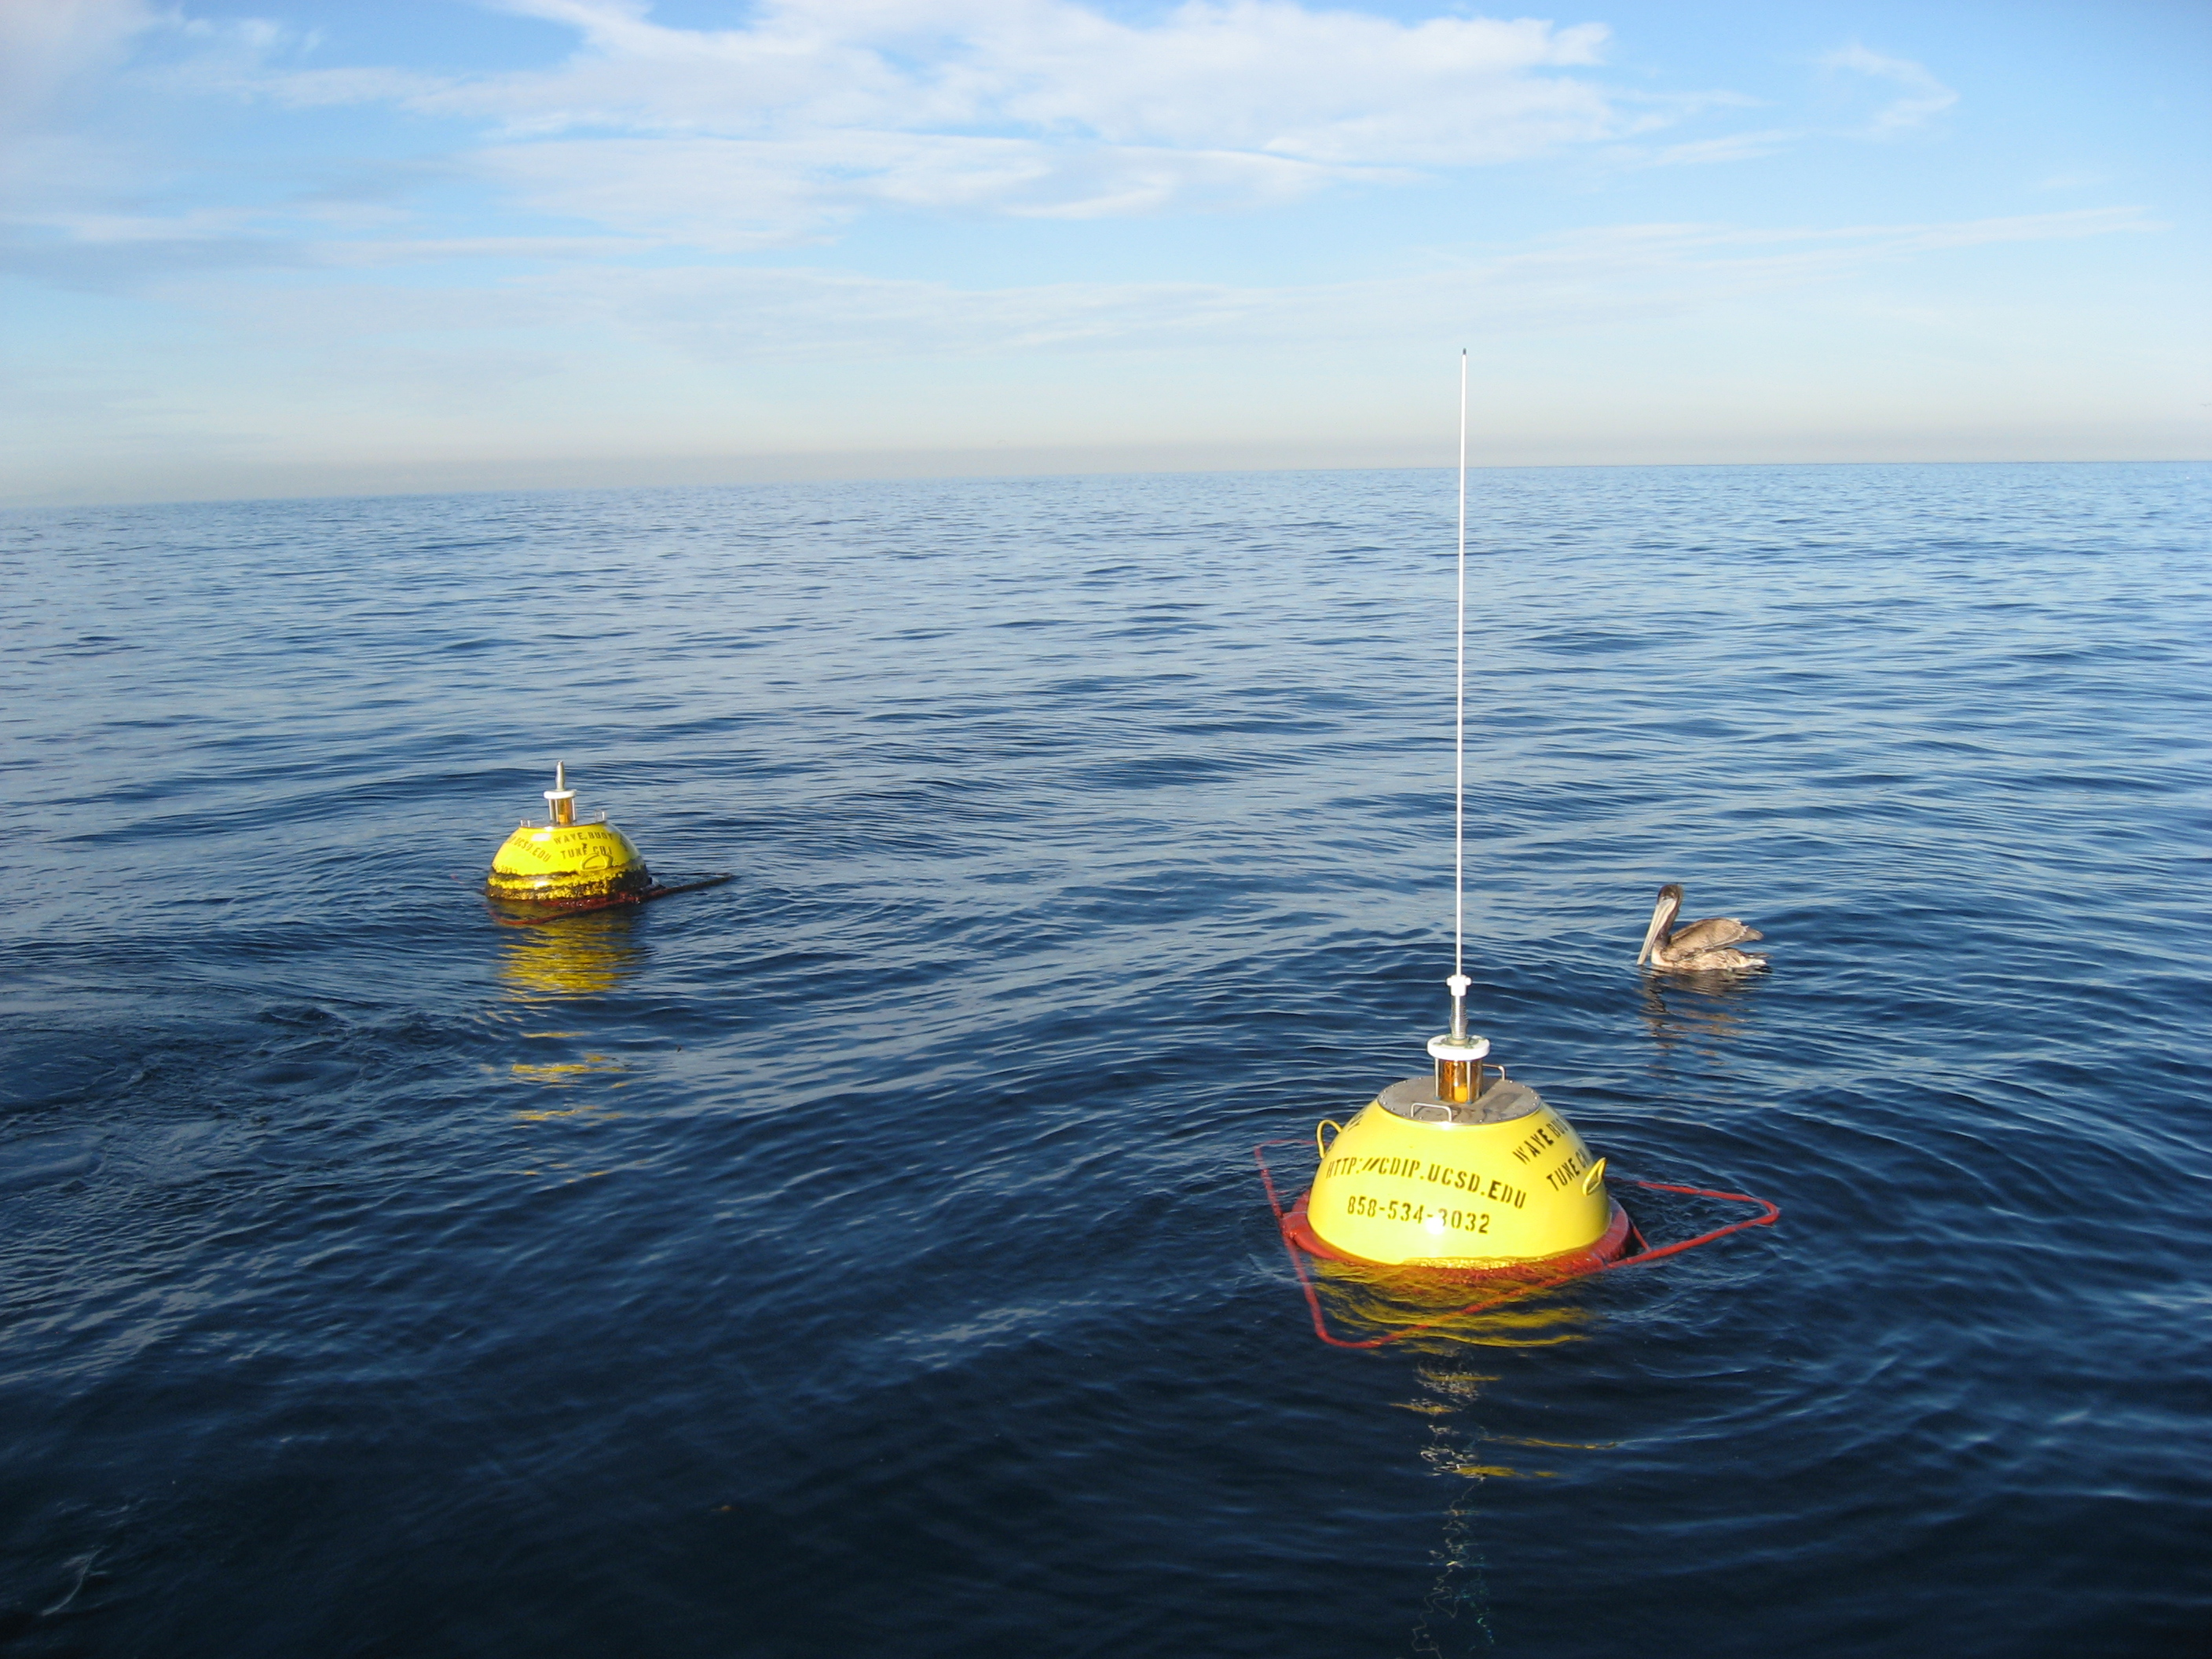 Newly deployed buoy with old buoy behind